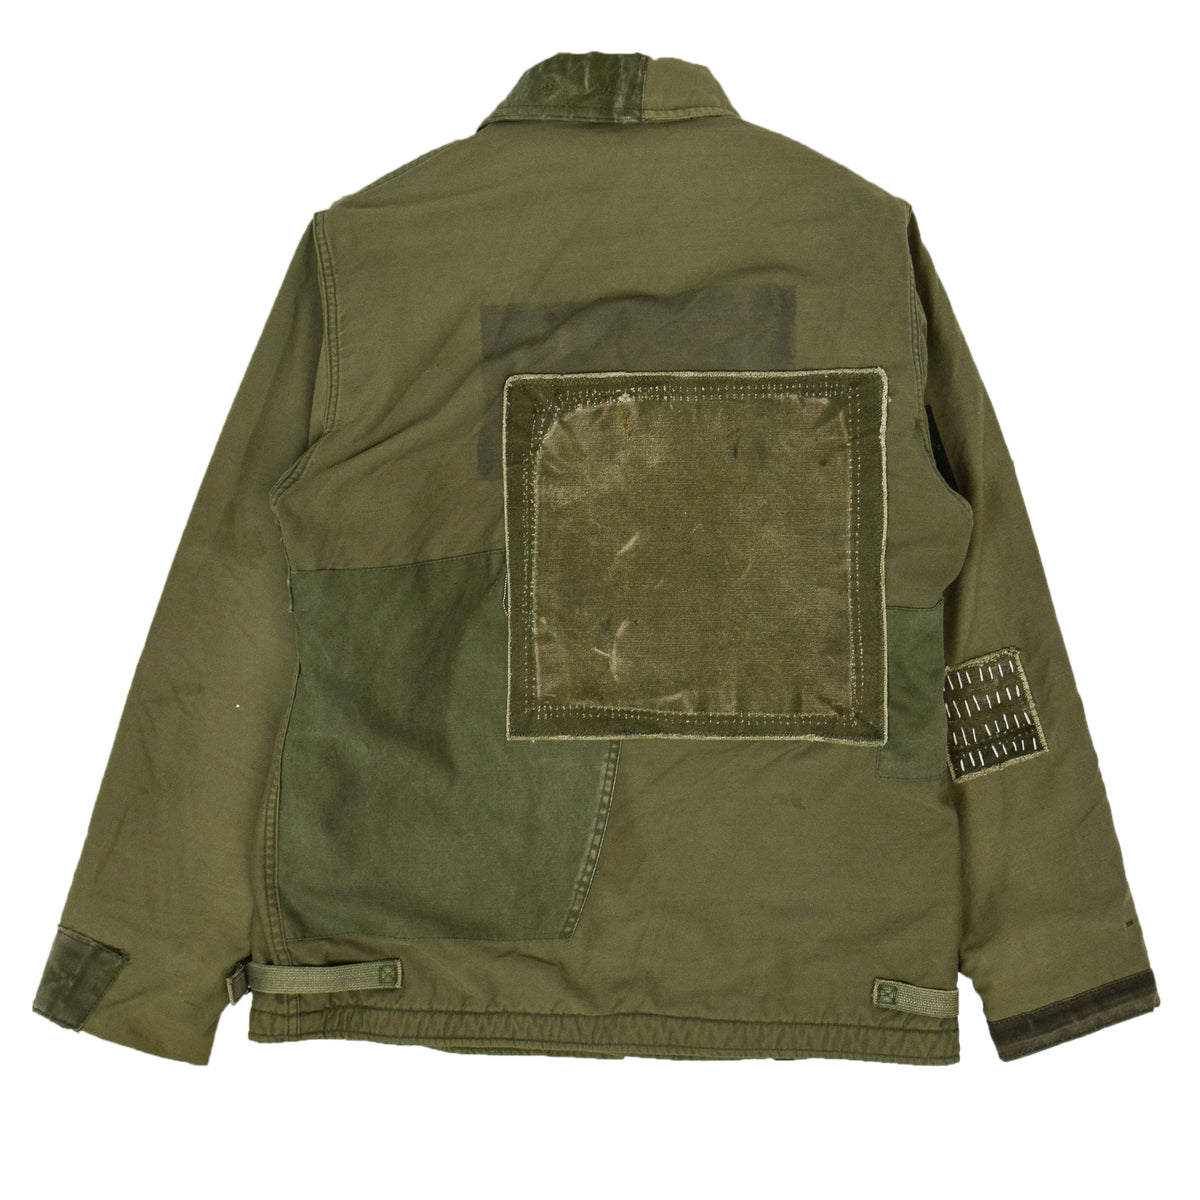 Vintage 80s US Military Darned Fine Reworked A-2 Deck Jacket M back